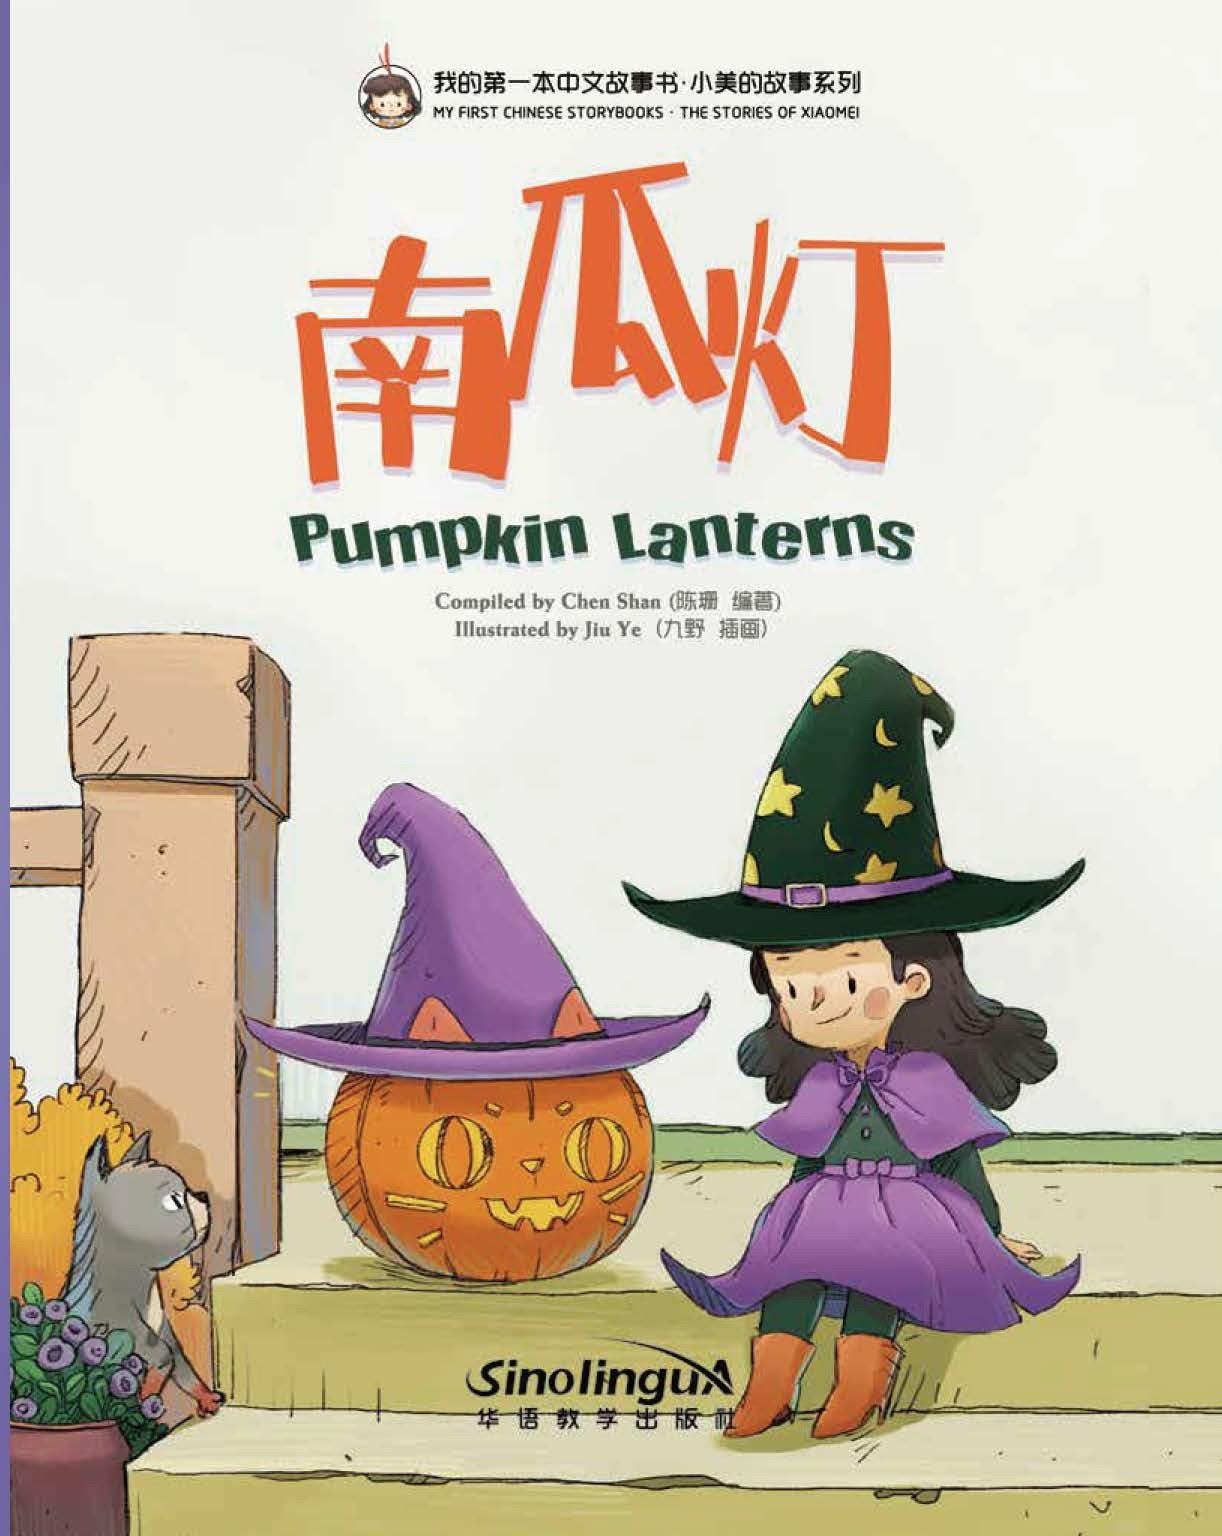 My First Chinese Storybooks-The Stories of Xiaomei<Pumpkin Lantern>